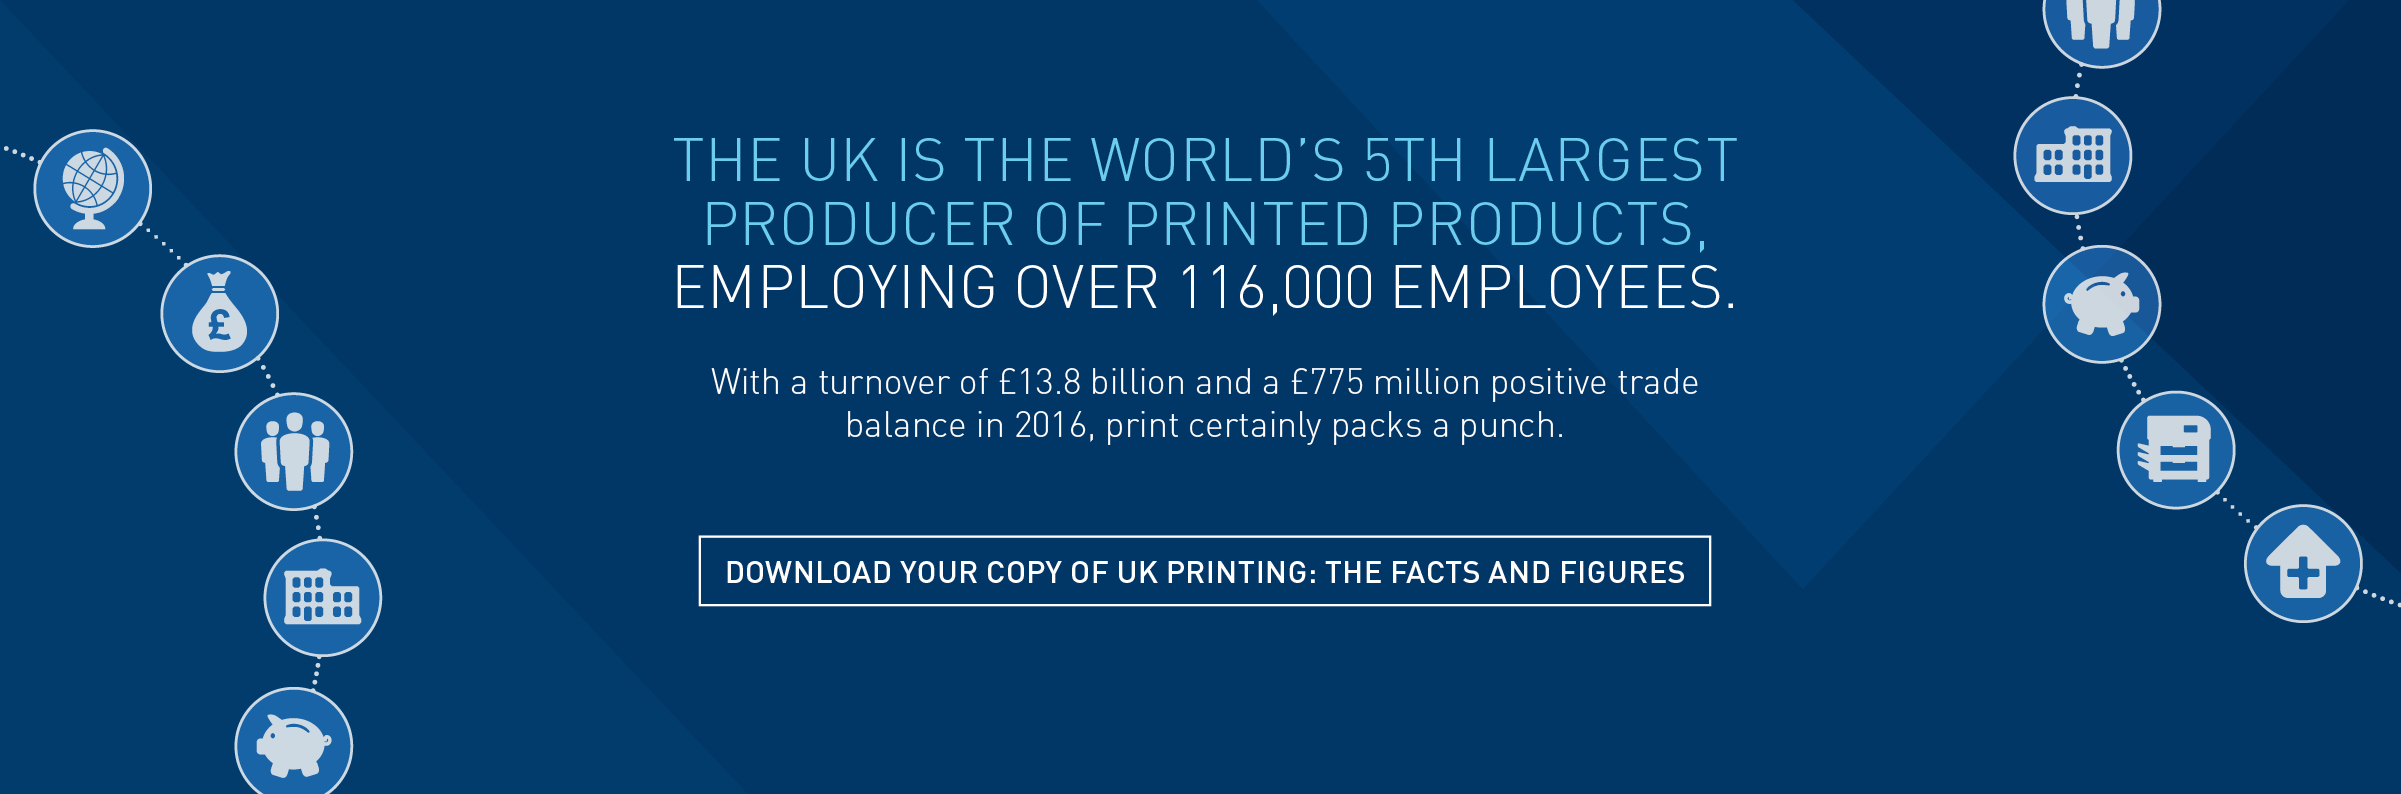 UK Printing - The Facts & Figures